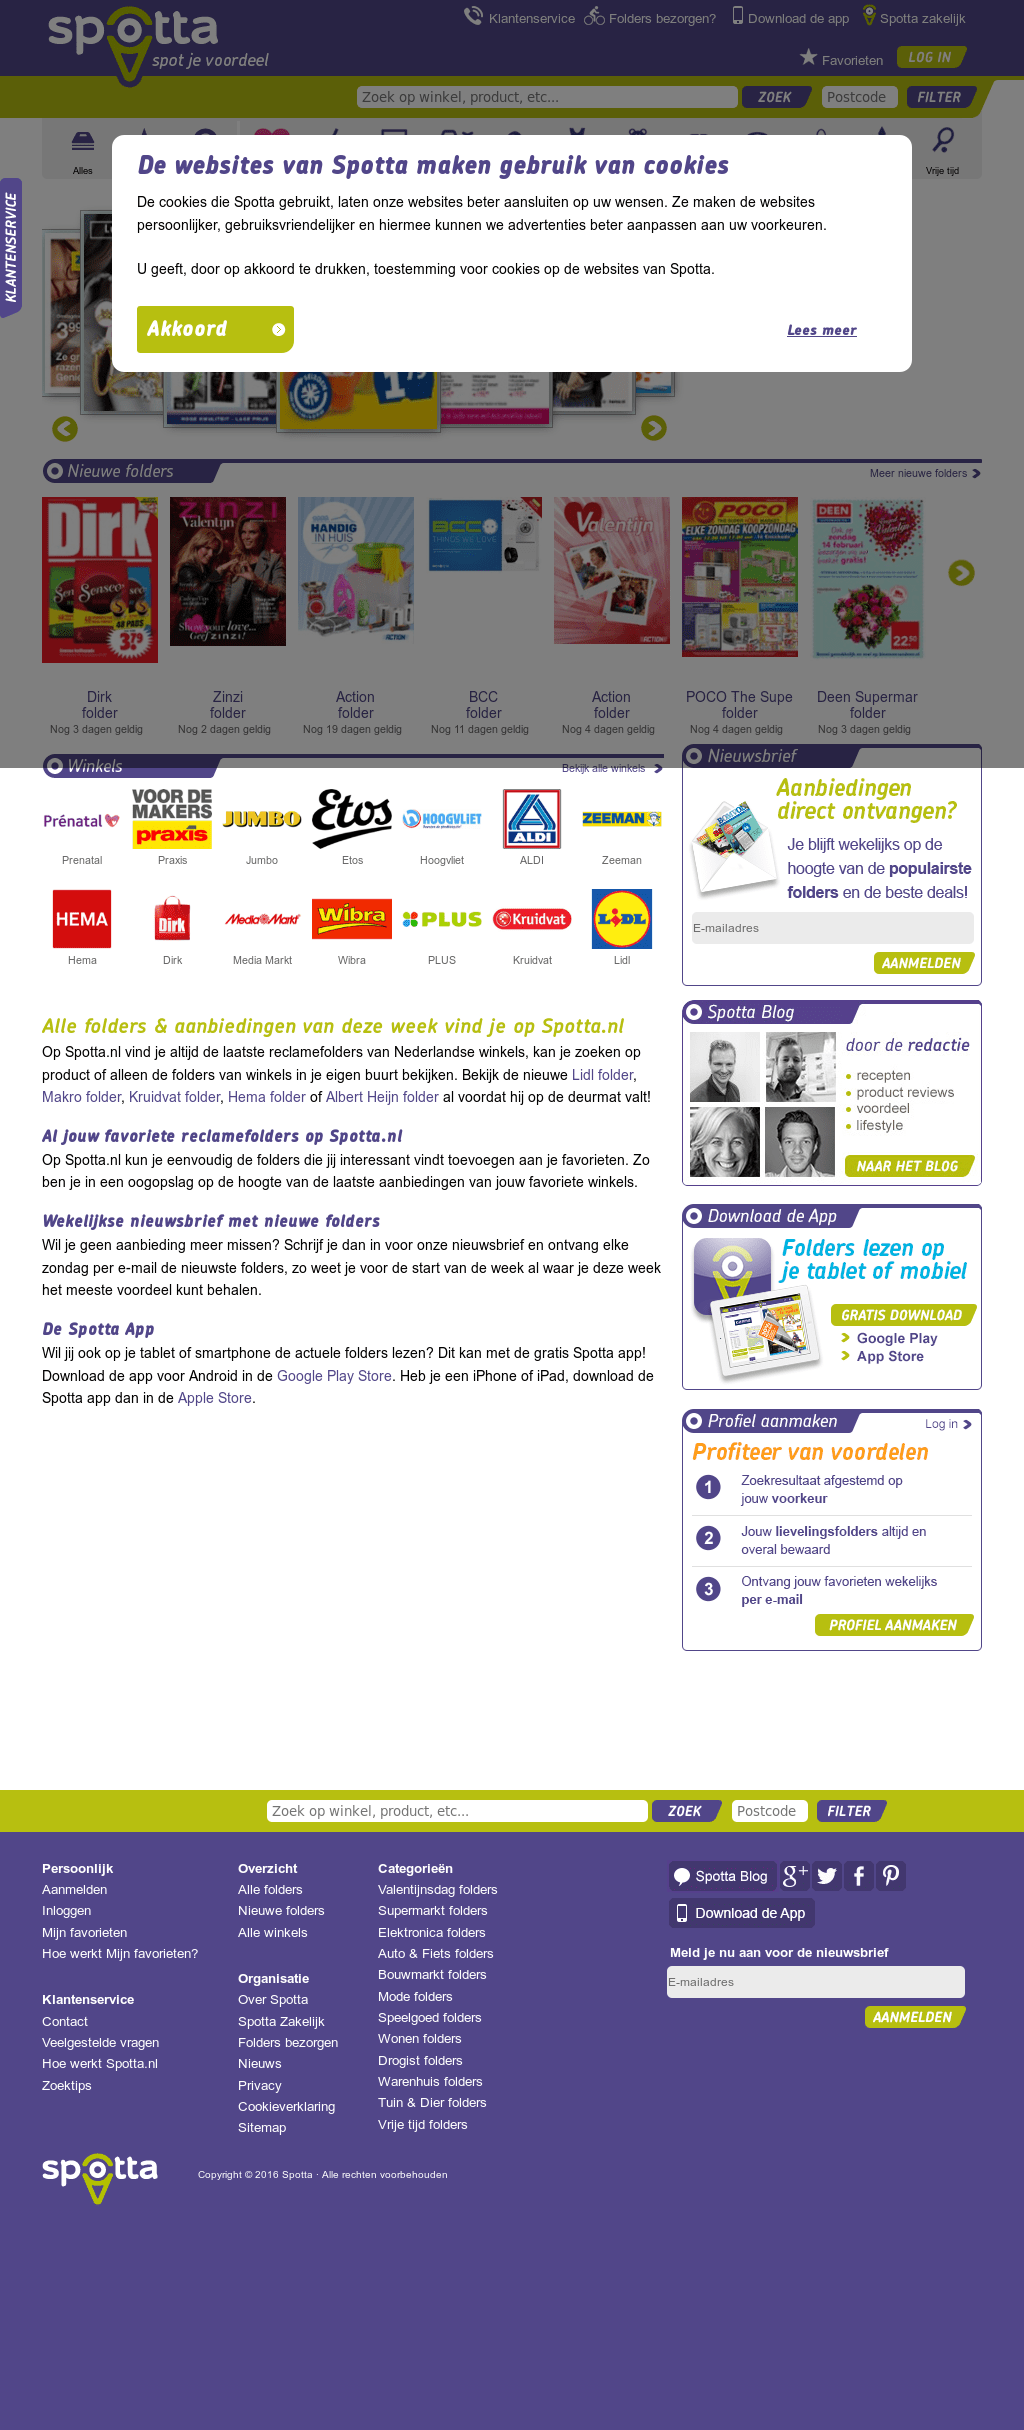 Action Folder Nl Folders Competitors Revenue And Employees Owler Company Profile